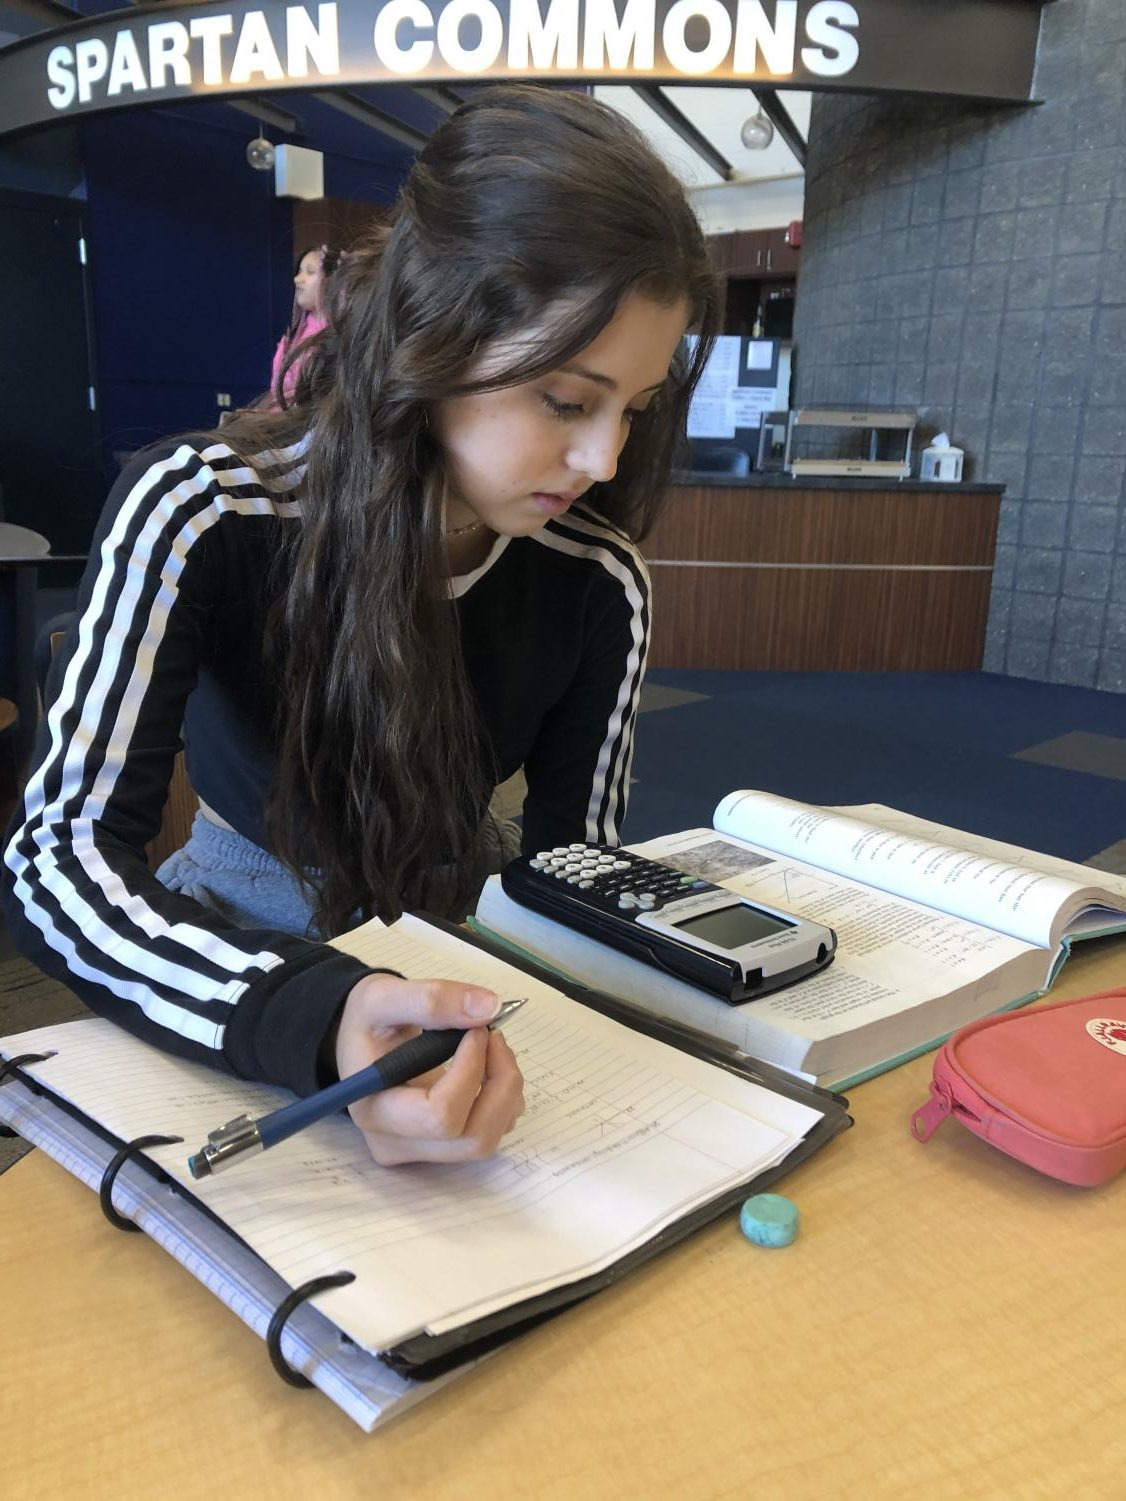 Senior Marali Sanchez works on homework during study hall in a U.S. educational environment.